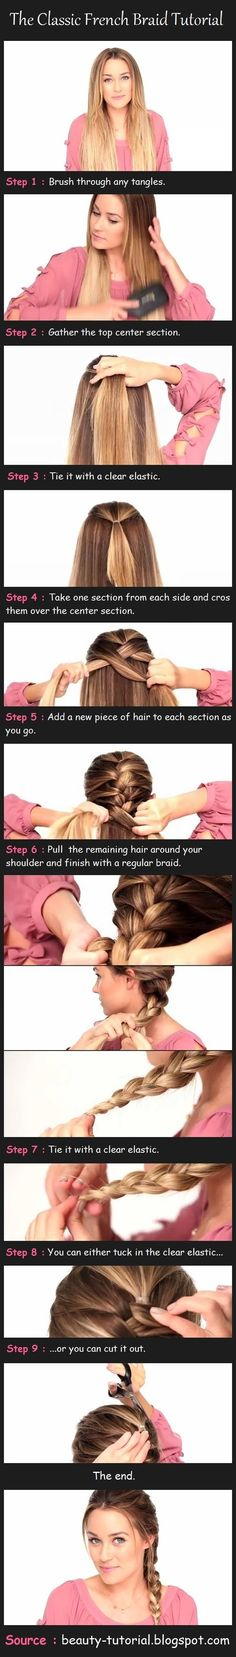 Not thought to put a little section back. Makes it so much easier to braid my own hair!